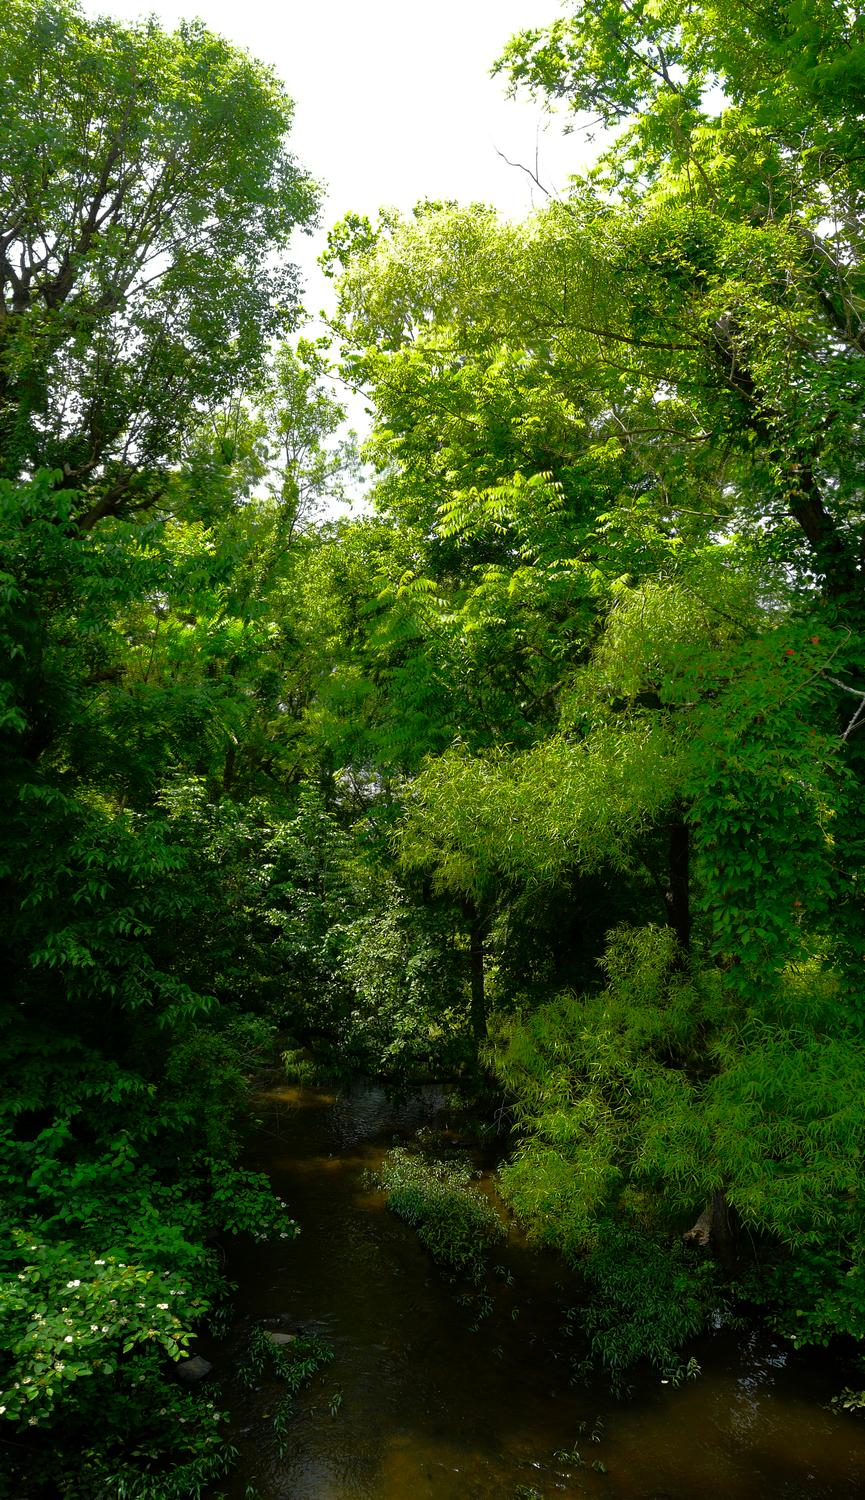 - A vertical panorama showing the trees along the banks of Chestnut Lick - Panasonic DMC-FZ18 - Tony Karp, design, art, photography, techno-impressionist, techno-impressionism, aerial photography , drone , drones , dji , mavic pro , video , 3D printing - Books -